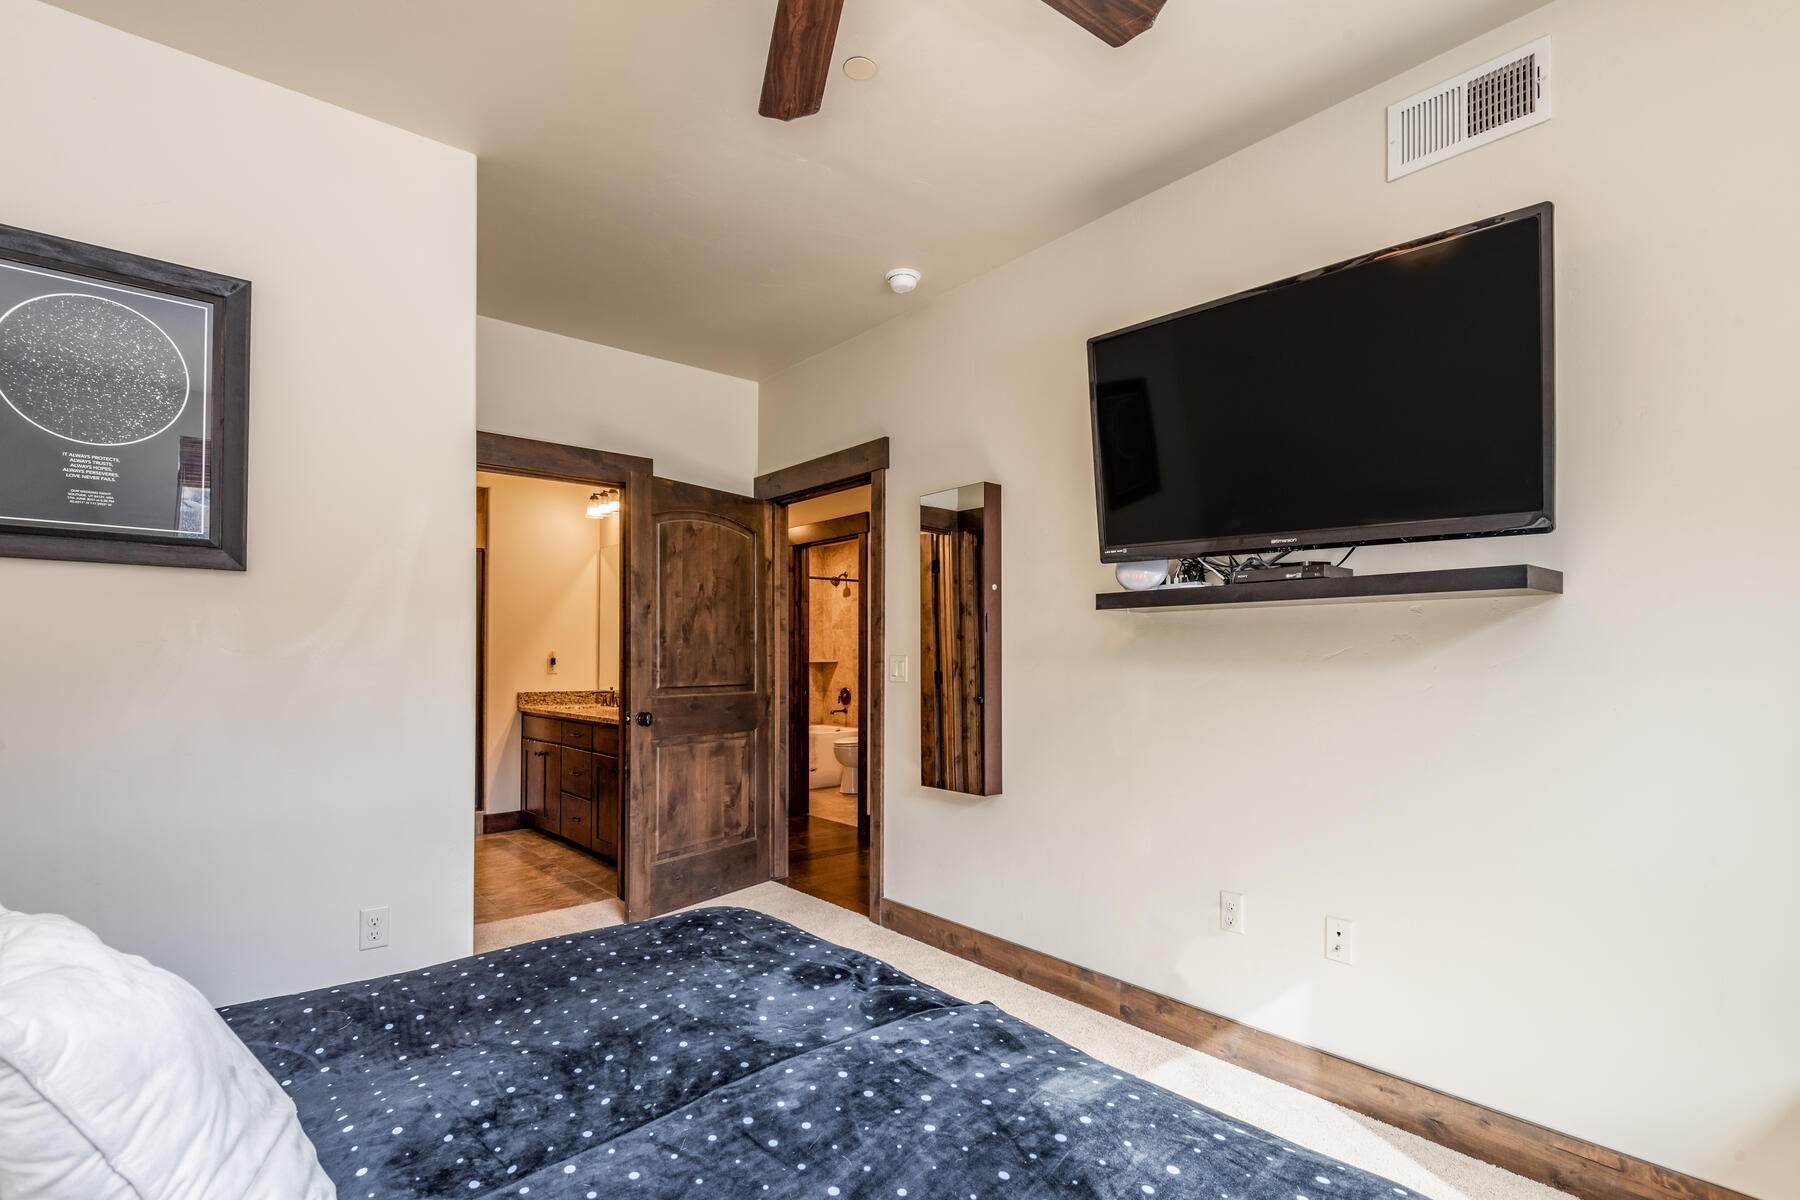 11. Condominiums for Sale at 3 Bedrooms Under $500k Within Minutes of Park City 14345 N Buck Horn Trail E Kamas, Utah 84036 United States